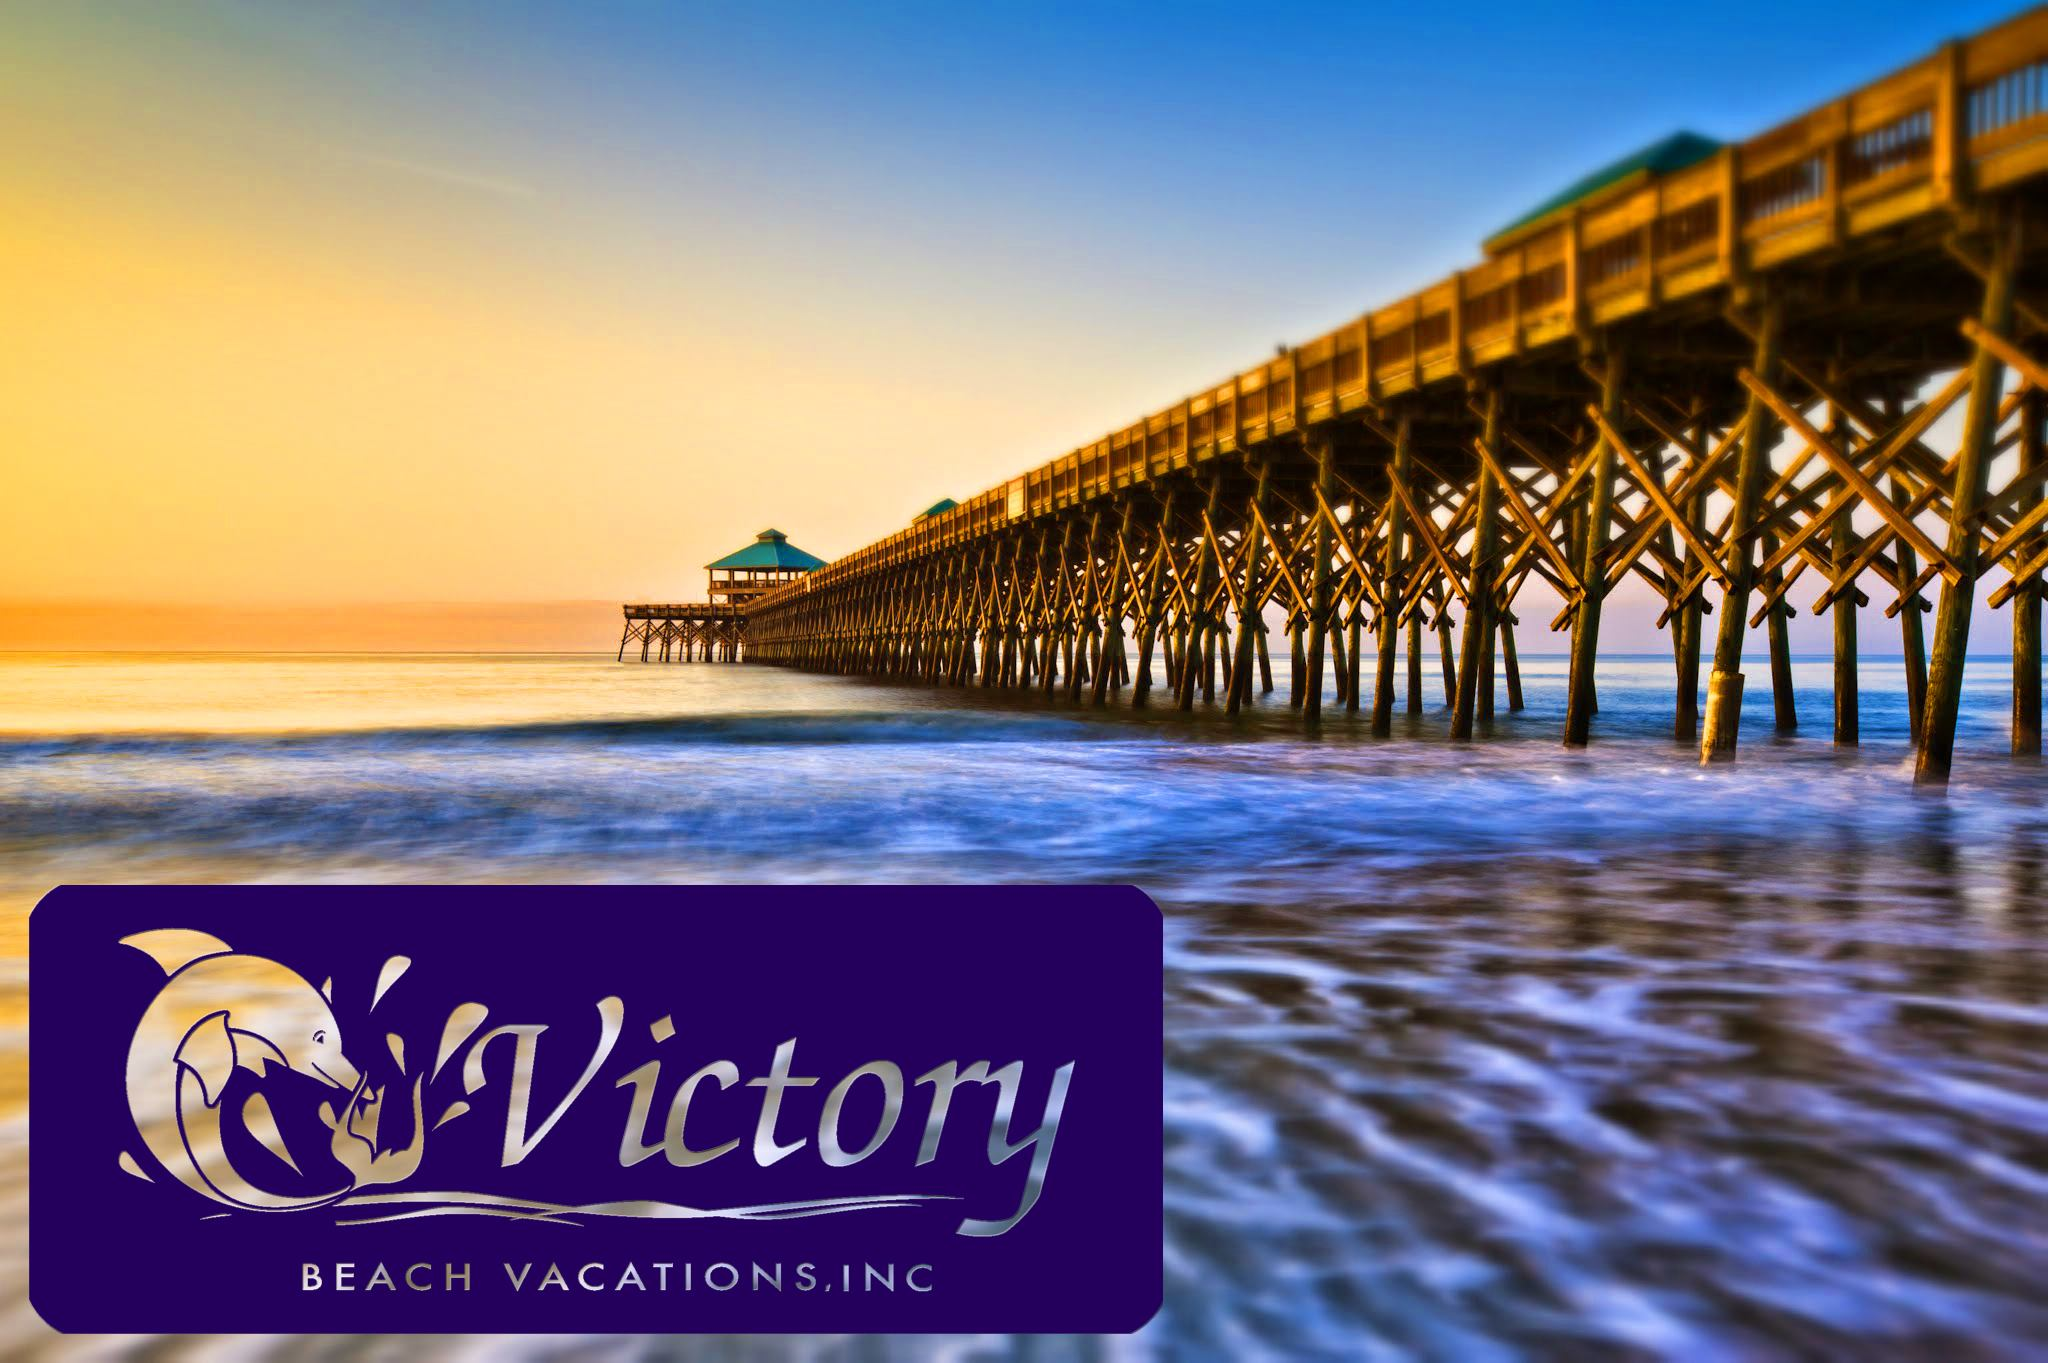 Victory Beach Vacations Carolina Beach Kure Beach North Carolina Coast